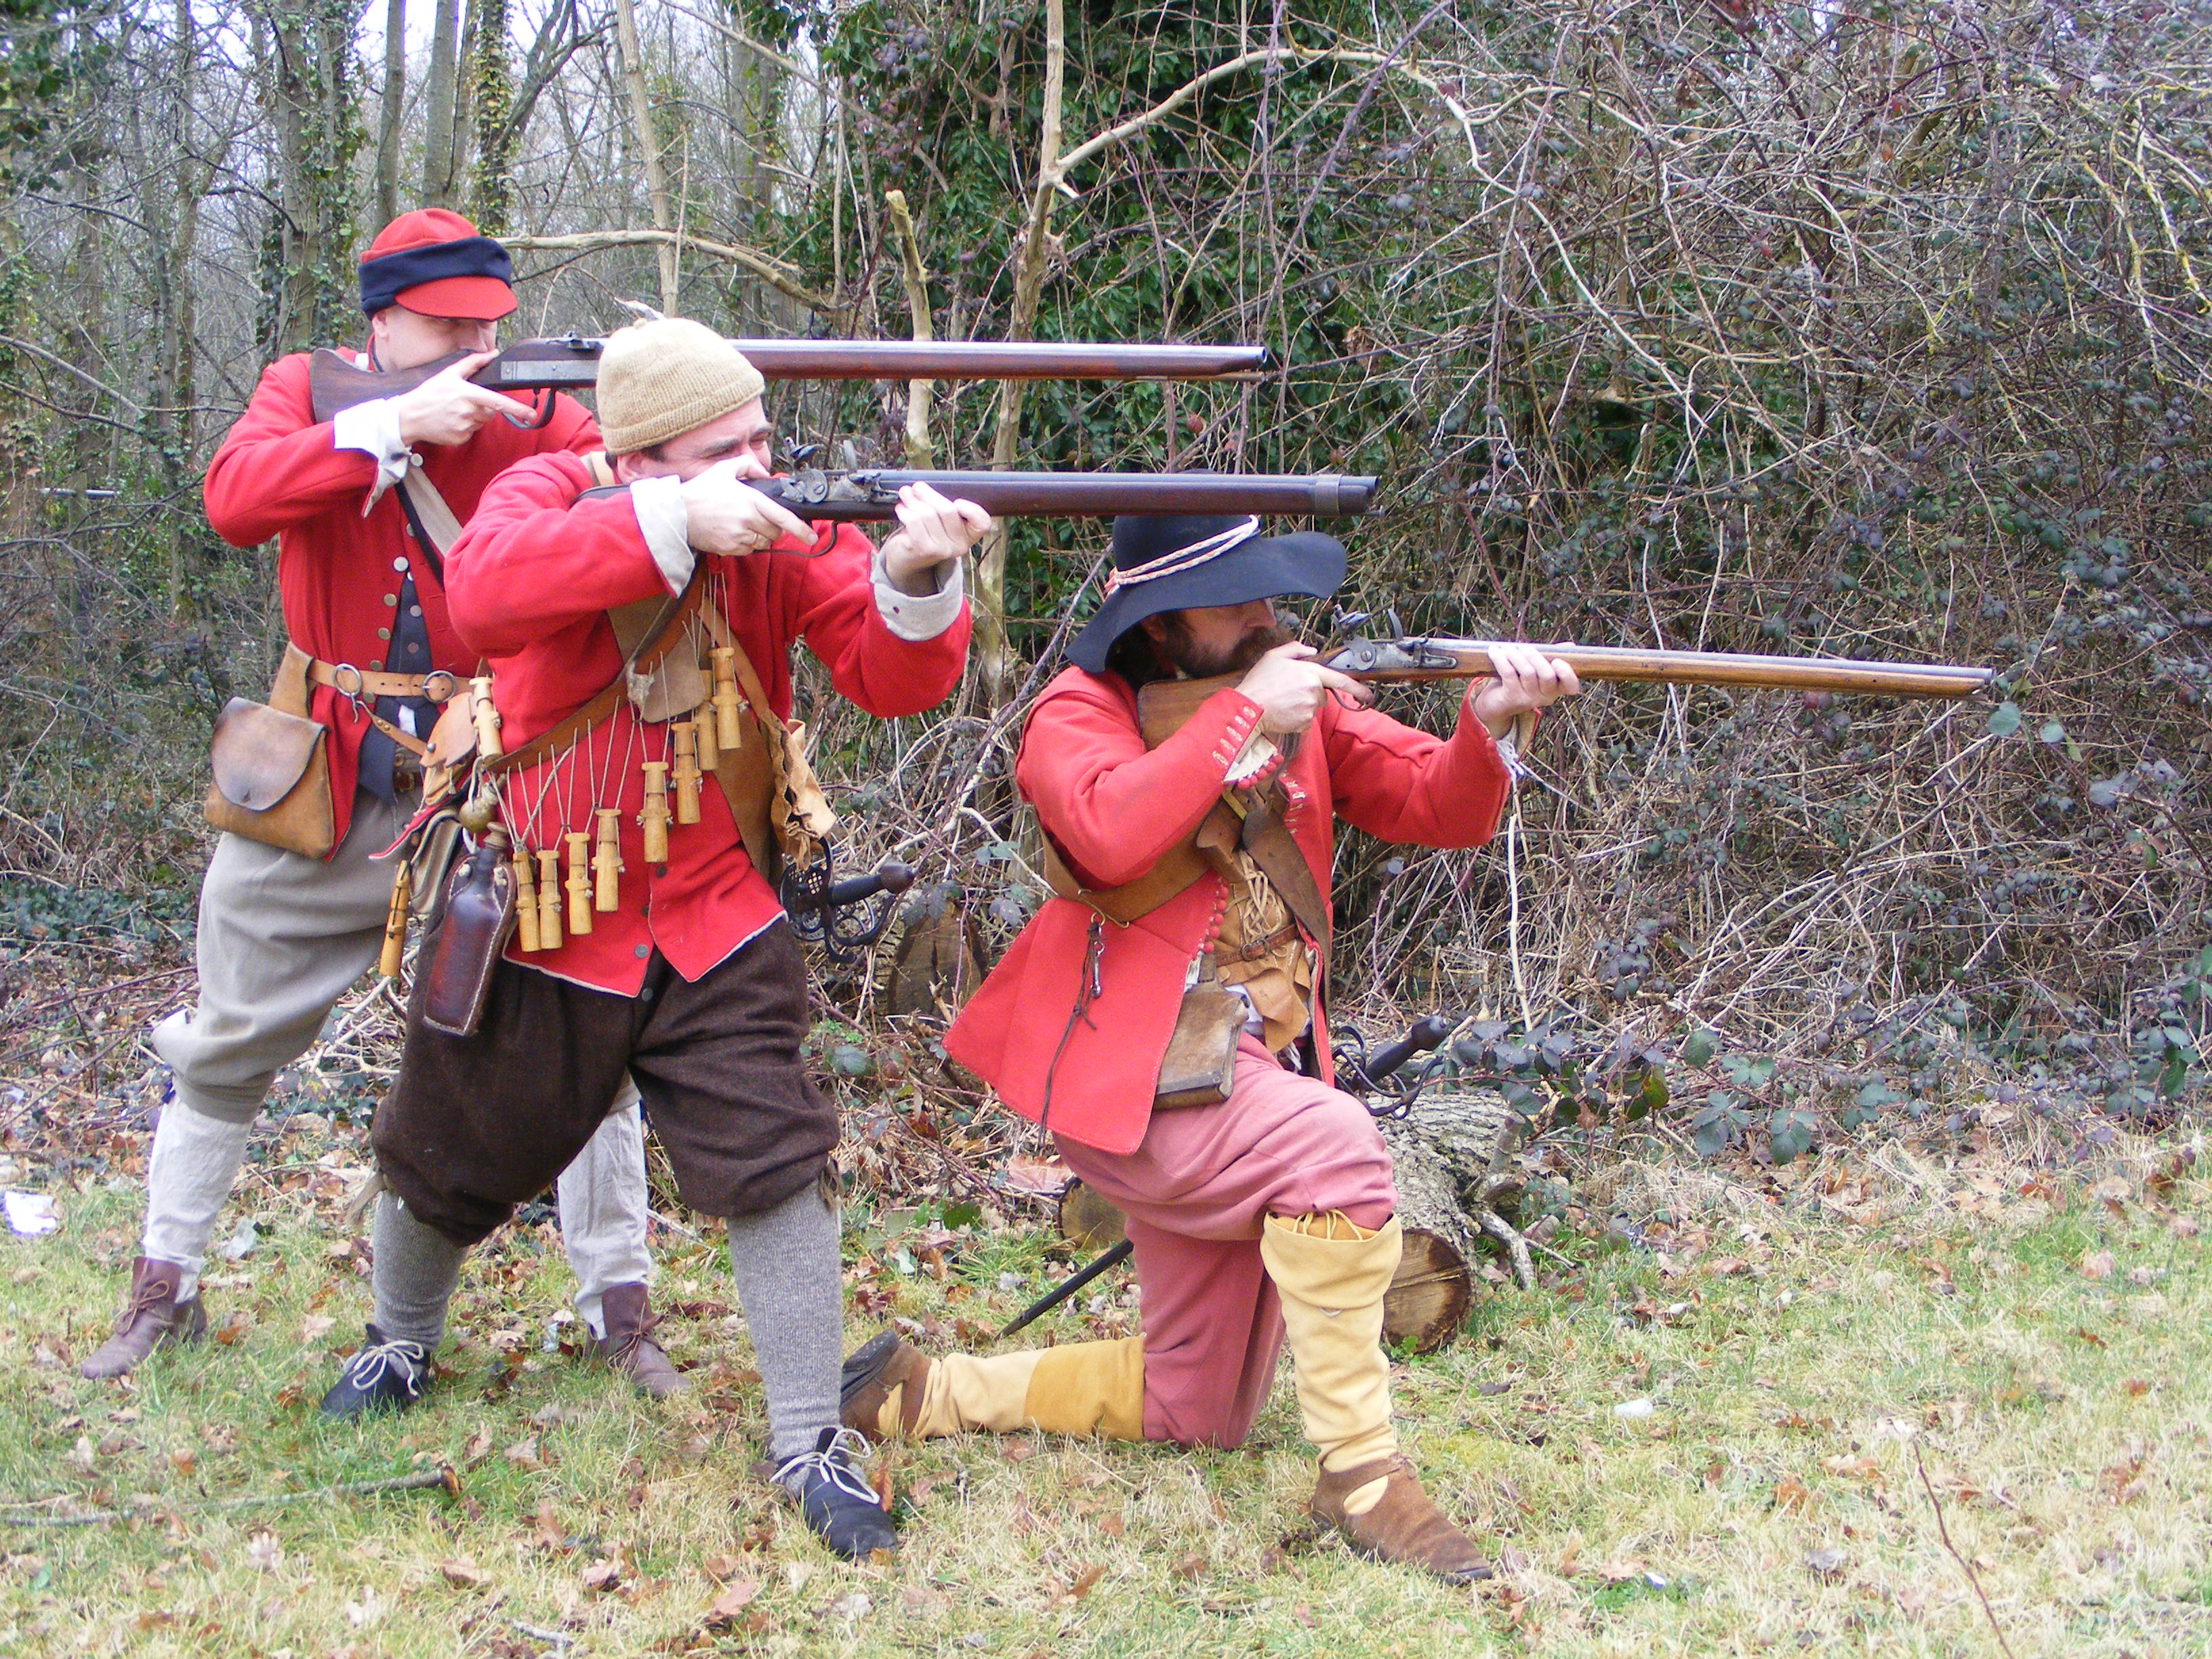 civil war 1642 The english civil war was as much the response to the effects of the reformation as it was a response to the needs of the rising middle classes, the landed gentry the war itself involved the king, parliament, the aristocracy, the middle classes, the commoners, and the army.